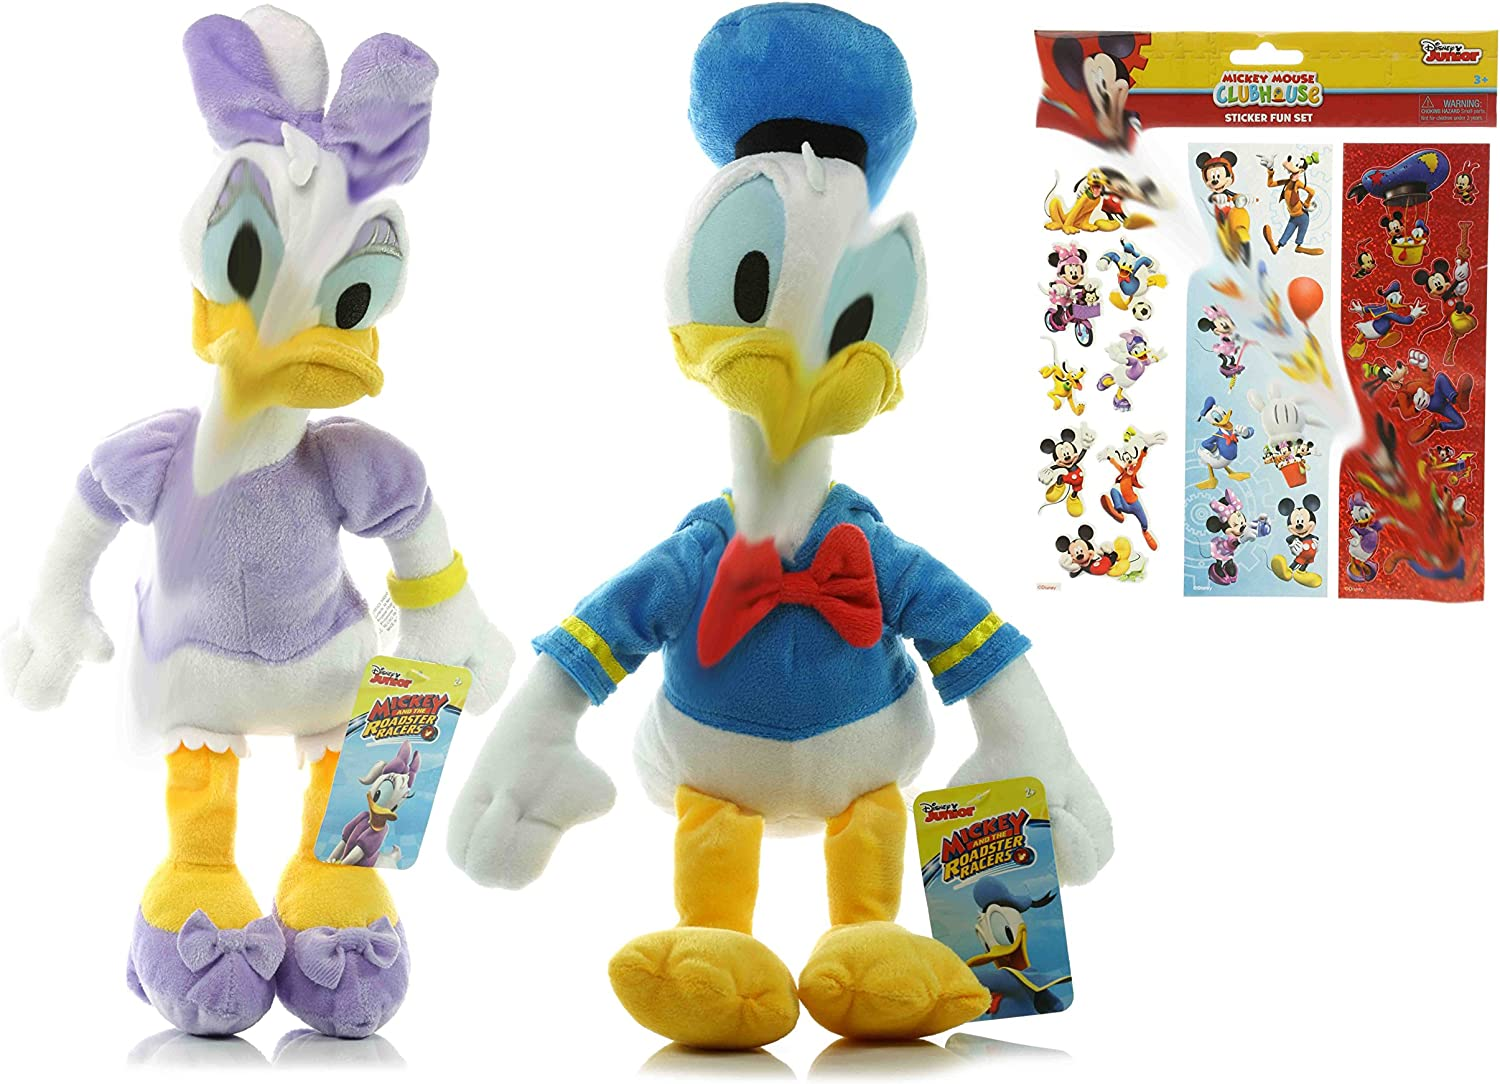 Amazon Com Cali Rcgg Donald And Daisy Duck Plush Doll Disney 15 Donald Duck Plush Toy 15 Daisy Duck Plush Toy Mickey Mouse Clubhouse Sticker Fun Set Toys Games